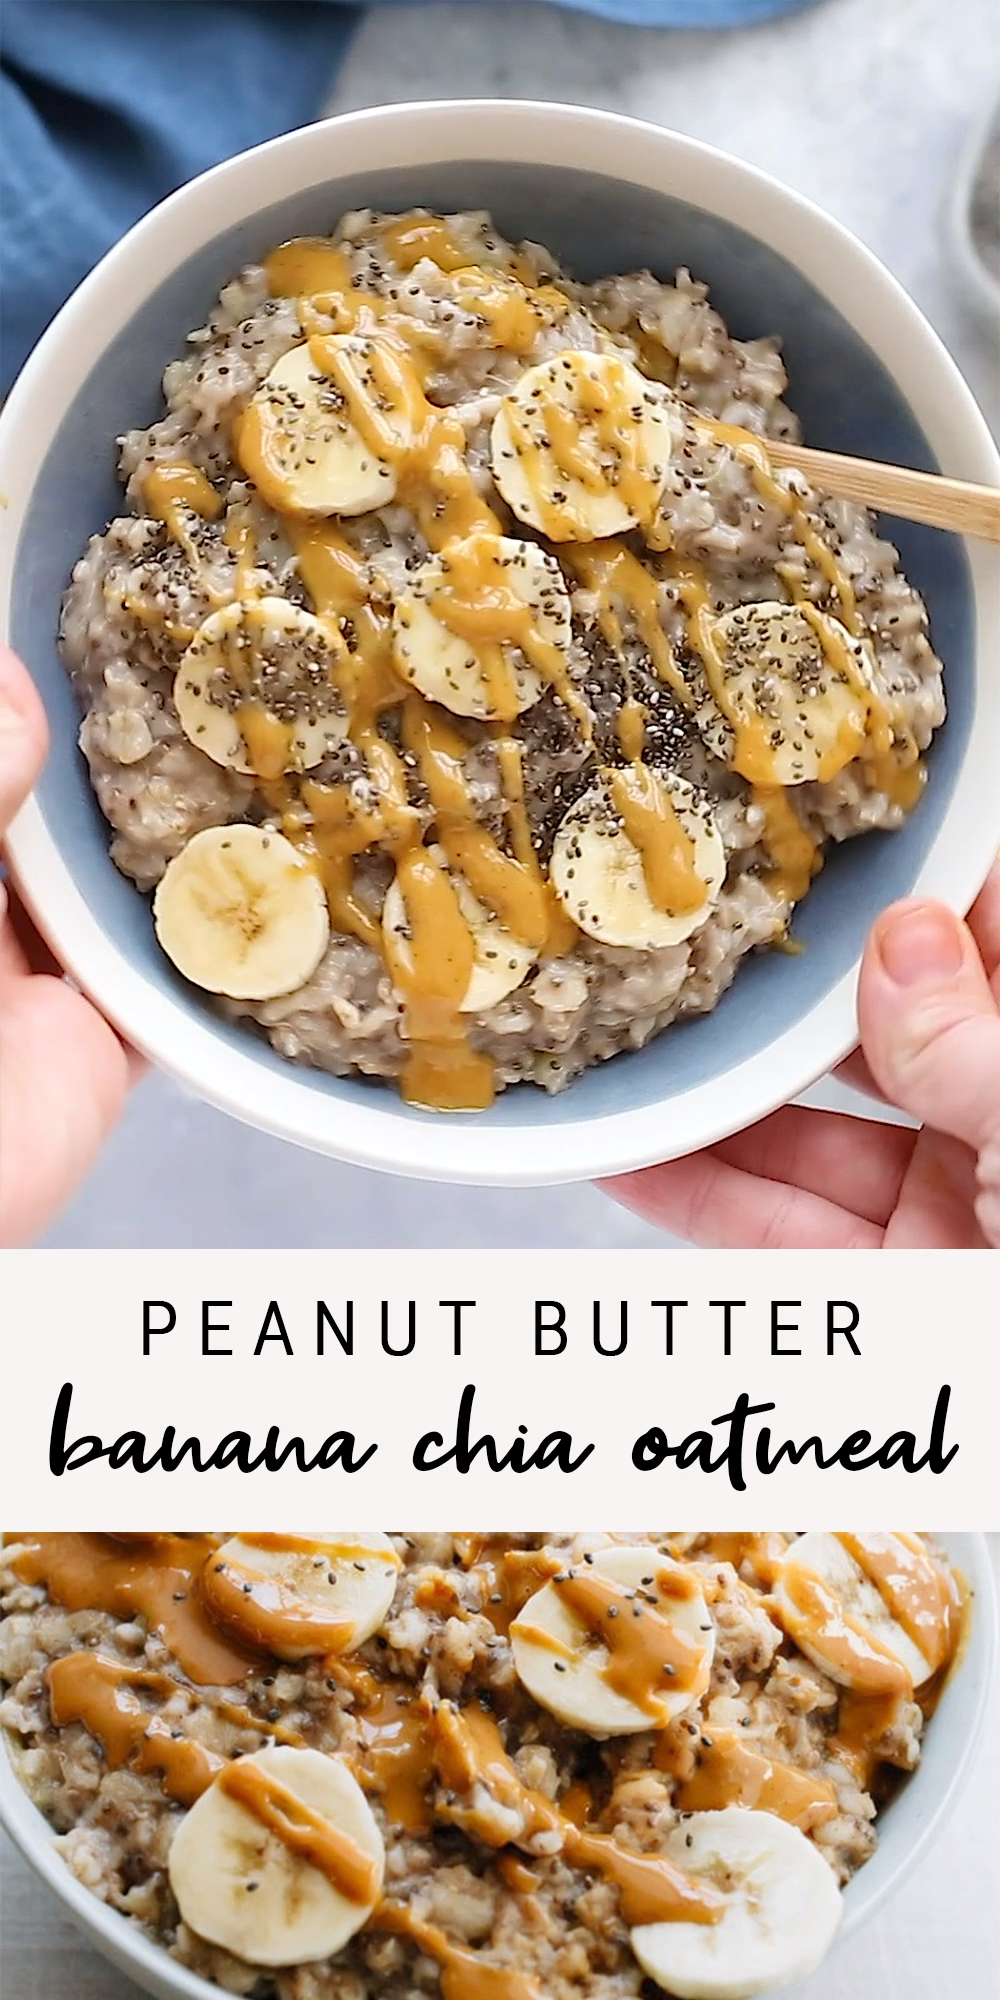 The ultimate healthy breakfast recipe, this peanut butter banana oatmeal is creamy, voluminous and will keep you full all morning long! Plus it only takes about 10 minutes to make.  Each bowl has around 370 calories, 17 grams of fiber (woot!), and 11 grams of protein.  #eatingbirdfood #oatmeal #peanutbutter #chia #banana